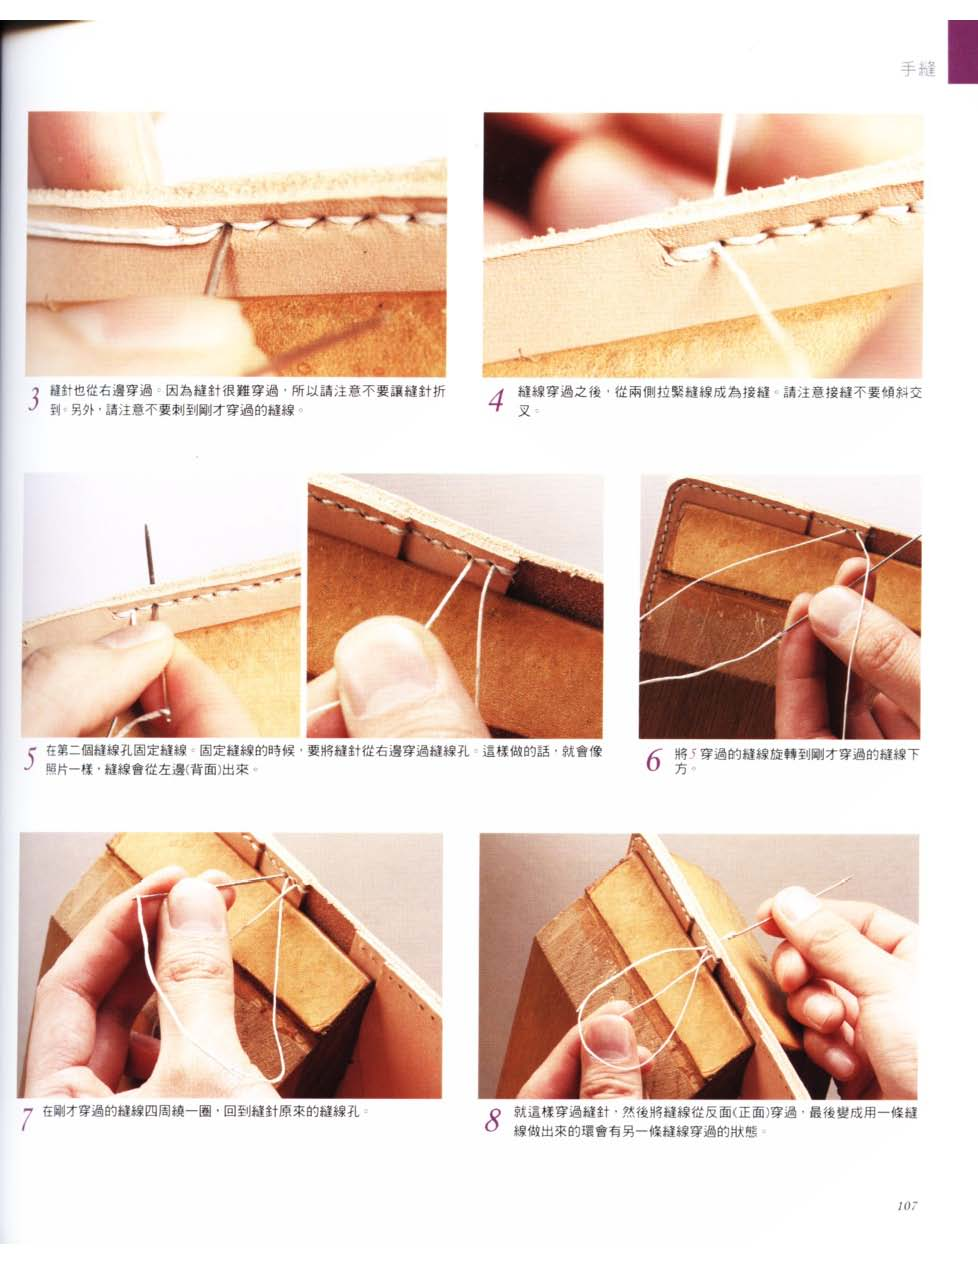 how to sew leather with saddle stitiching (7)